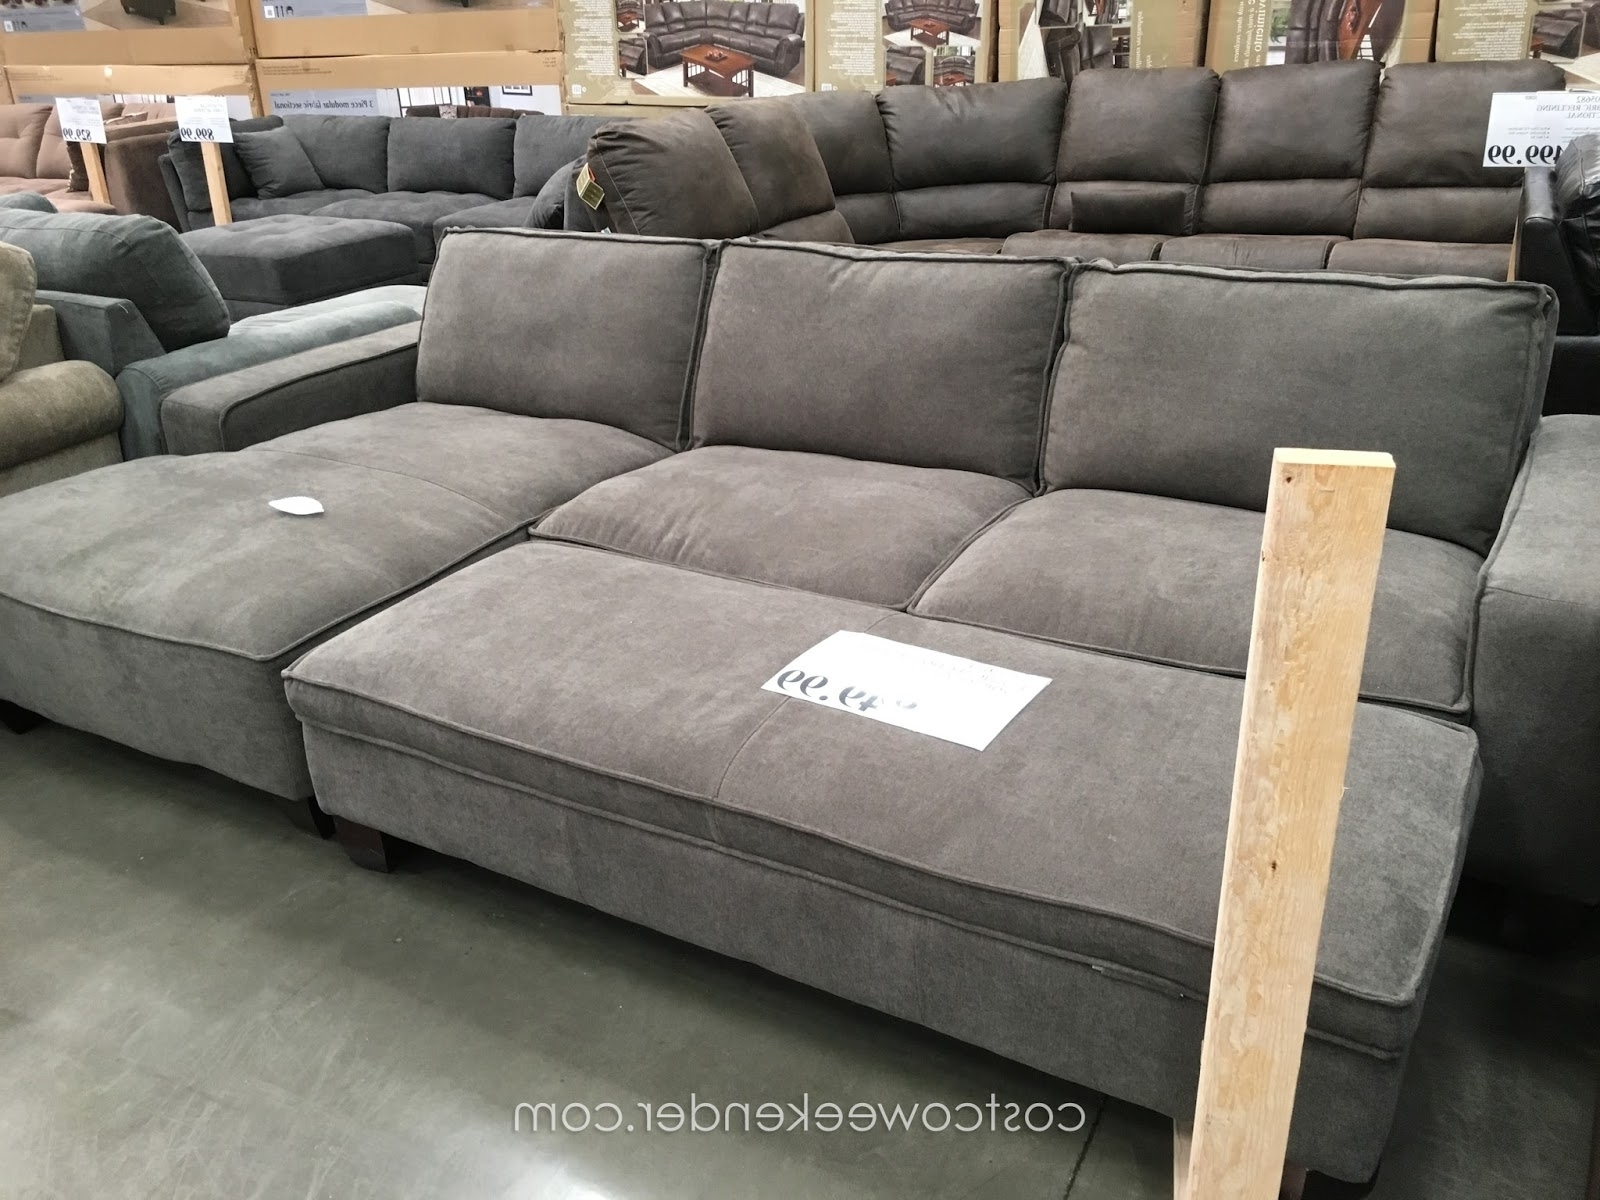 Favorite Sofa Chaise Sectionals In Leather Furniture Chair Sectional With Chaise Sofa White Sofas (View 5 of 15)